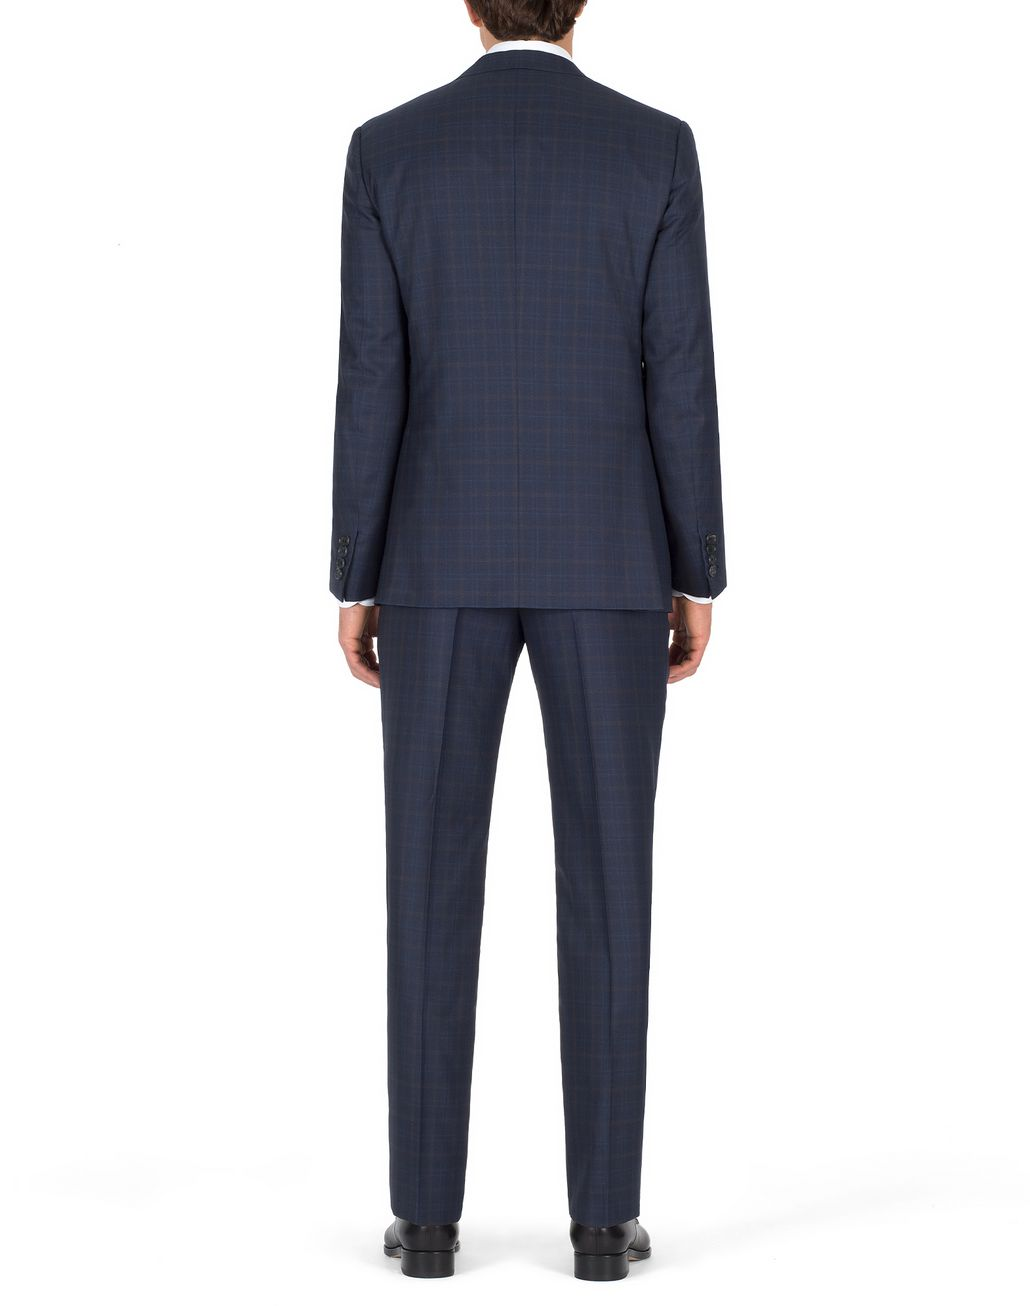 BRIONI Navy Blue Subtle Check Brunico Suit Suits & Jackets Man d